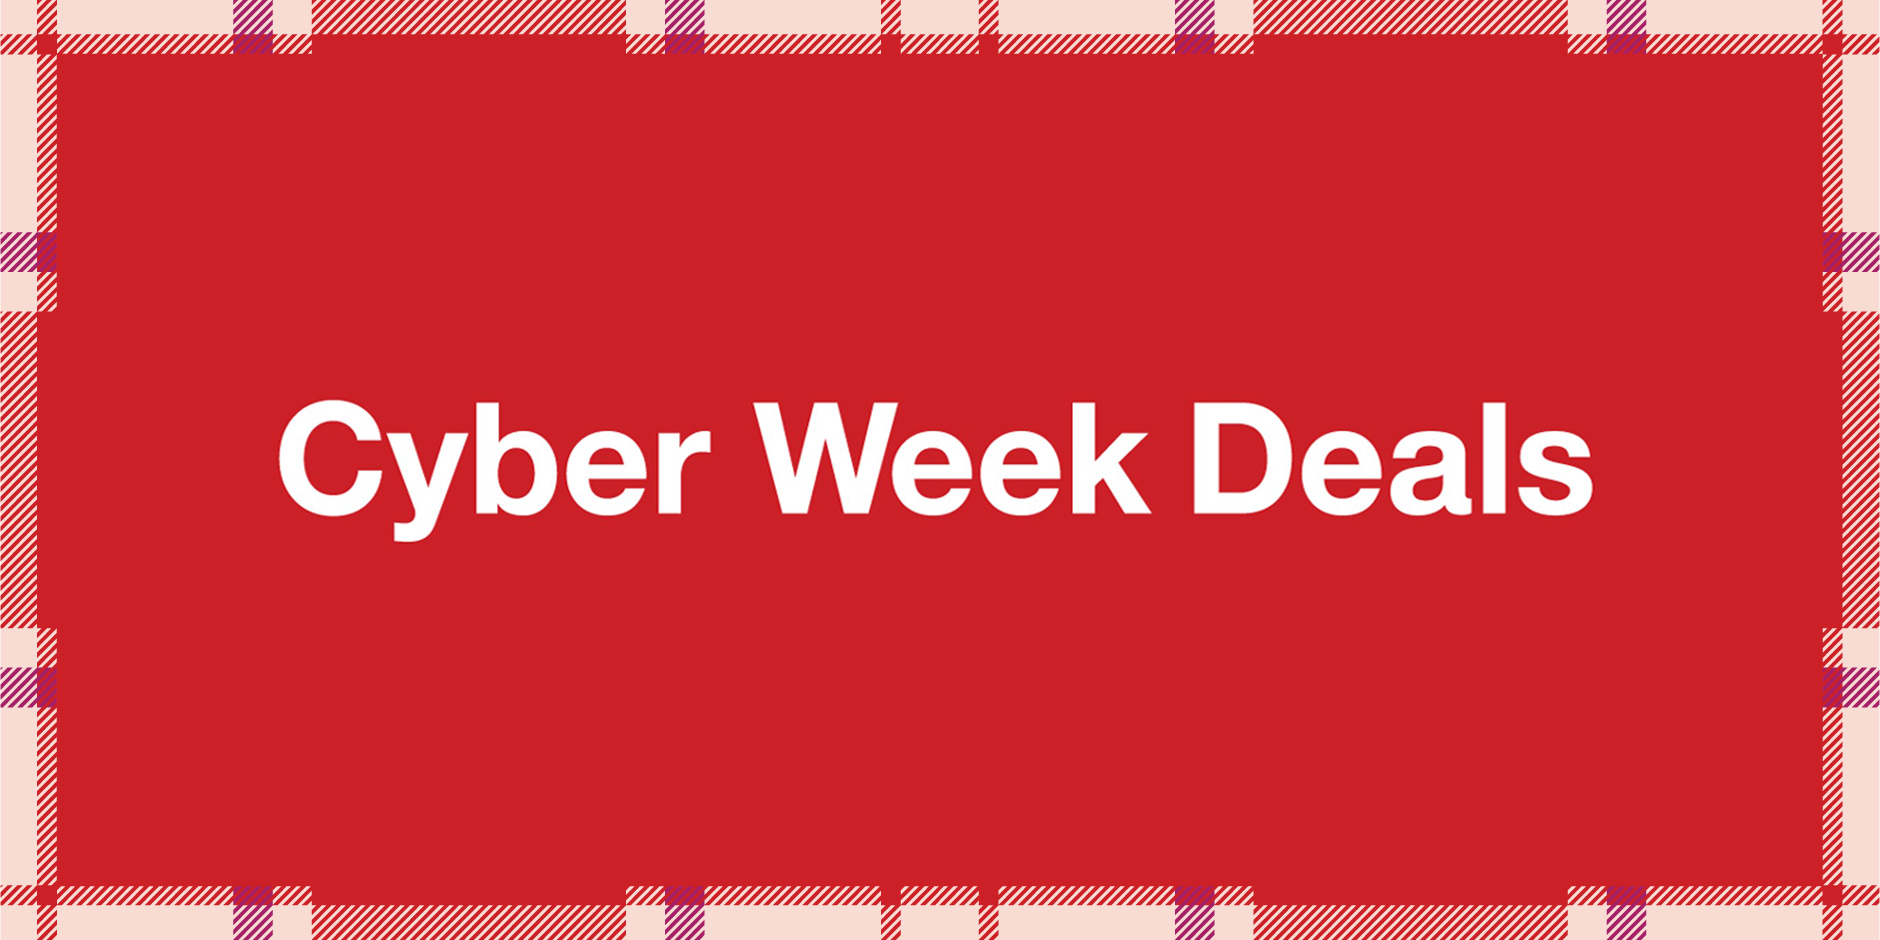 A red plaid background with white text: Cyber Week Deals